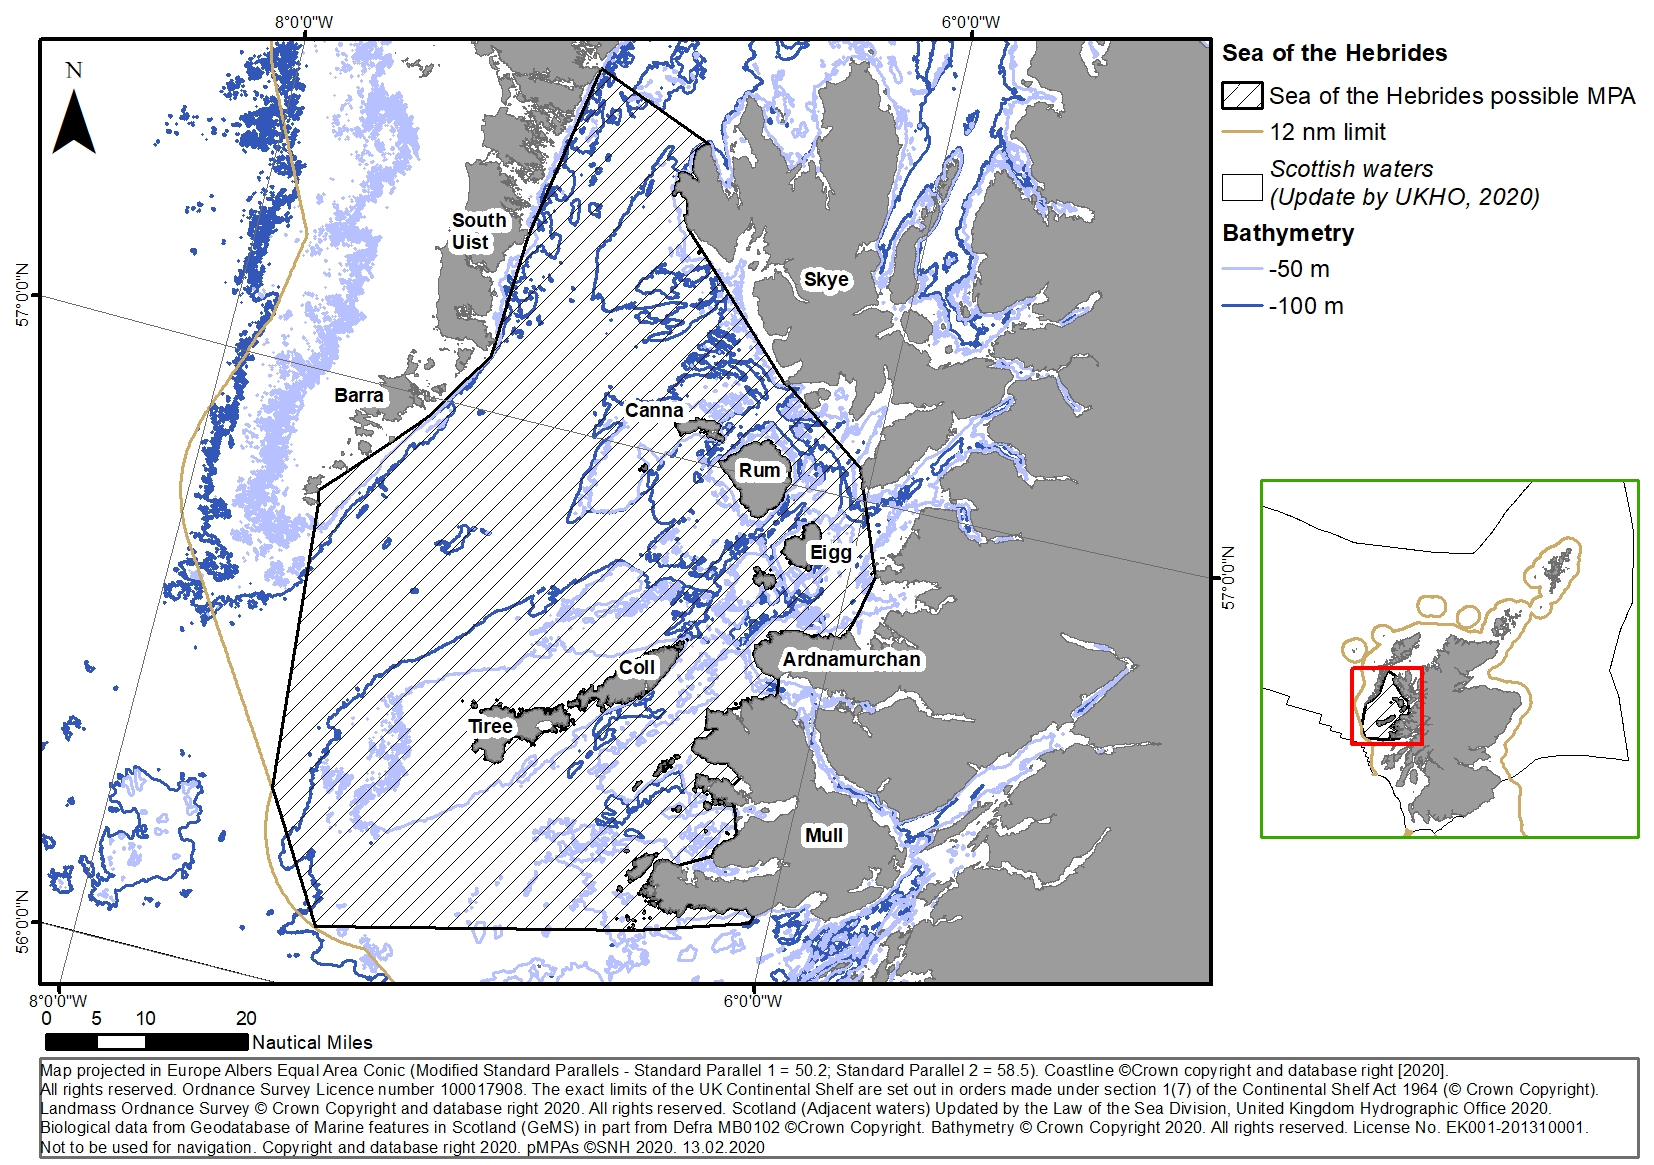 Figure 10: The Sea of the Hebrides pMPA/MPA